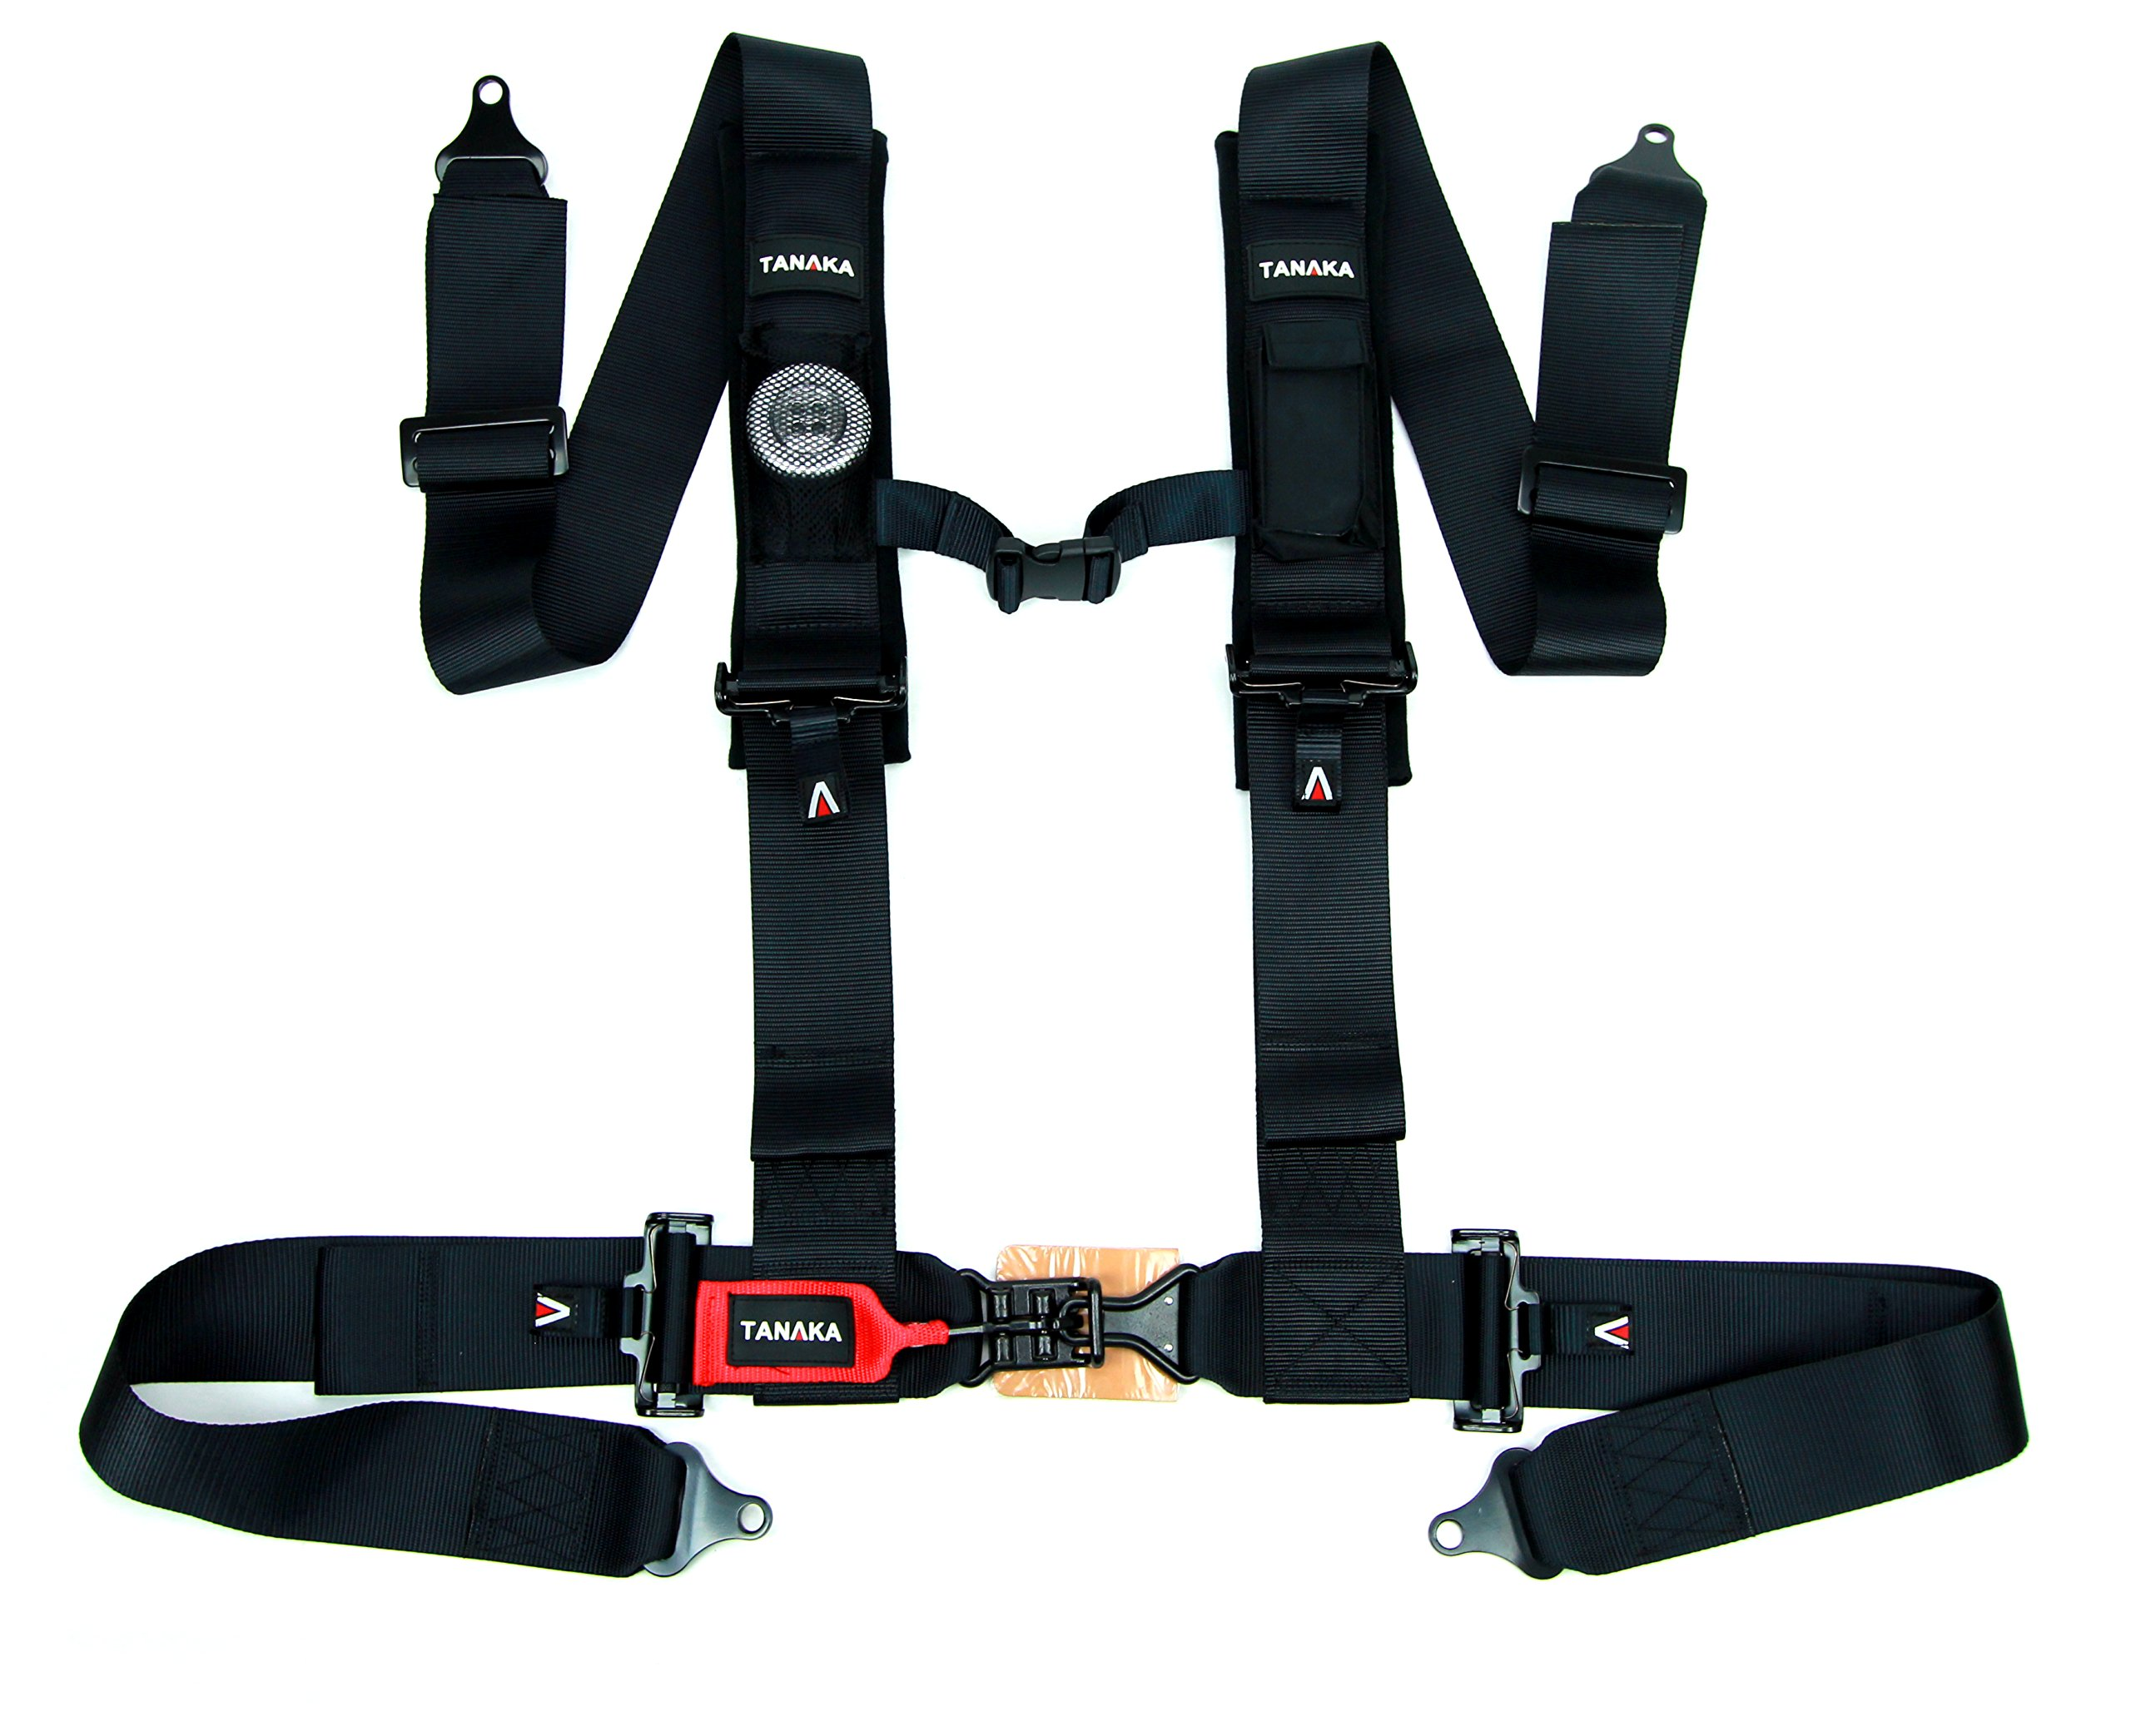 Tanaka Black Series Latch and Link Safety Harness Set with Ultra Comfort Heavy Duty Shoulder Pads (for one seat) (Black) (3'' Onyx)